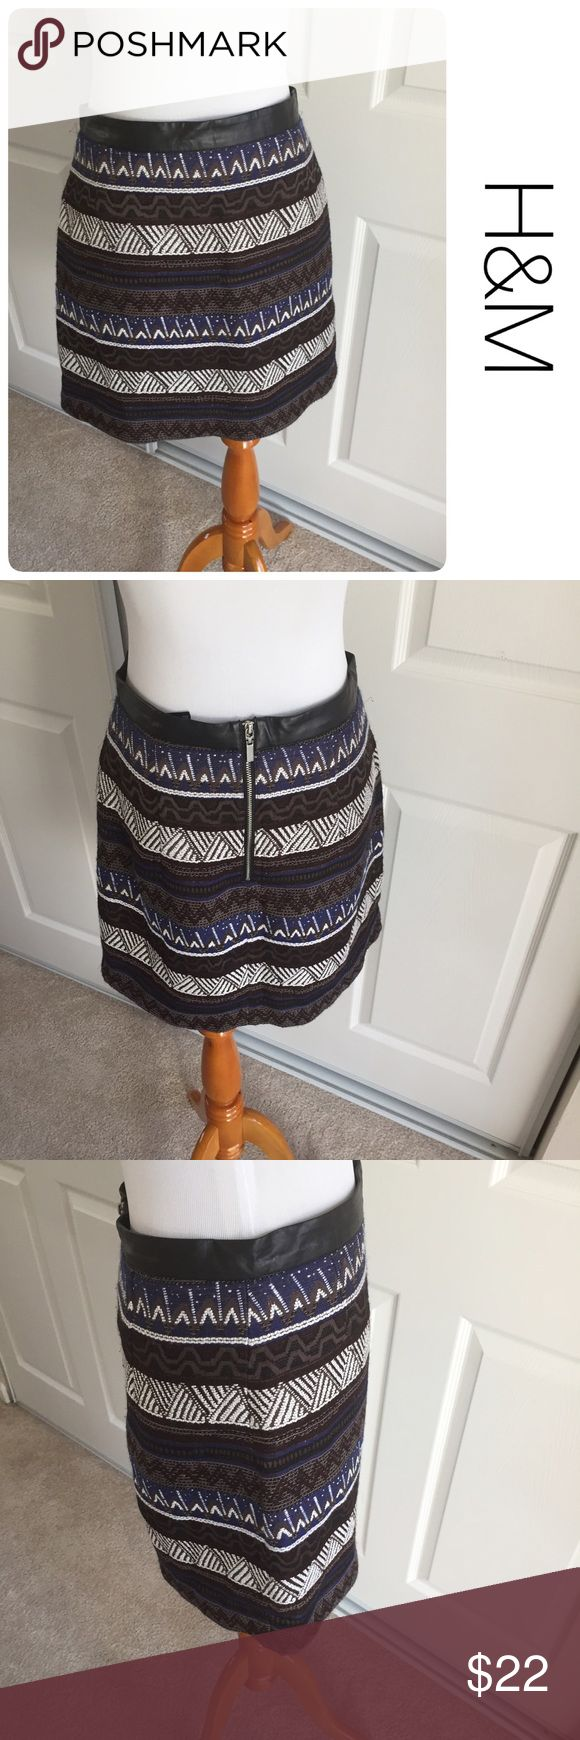 H&M tribal print skirt size 8 ♦️No stains, holes. Minor piling as pictured                                           ♦️Materials- Poly/acrylic blend. See material tag for details                           ♦️Measurements:                                  ♦️Laying flat waist 14 inches                     ♦️Laying flat from top of hem to the bottom of the front hem is approximately 17 inches H&M Skirts Mini